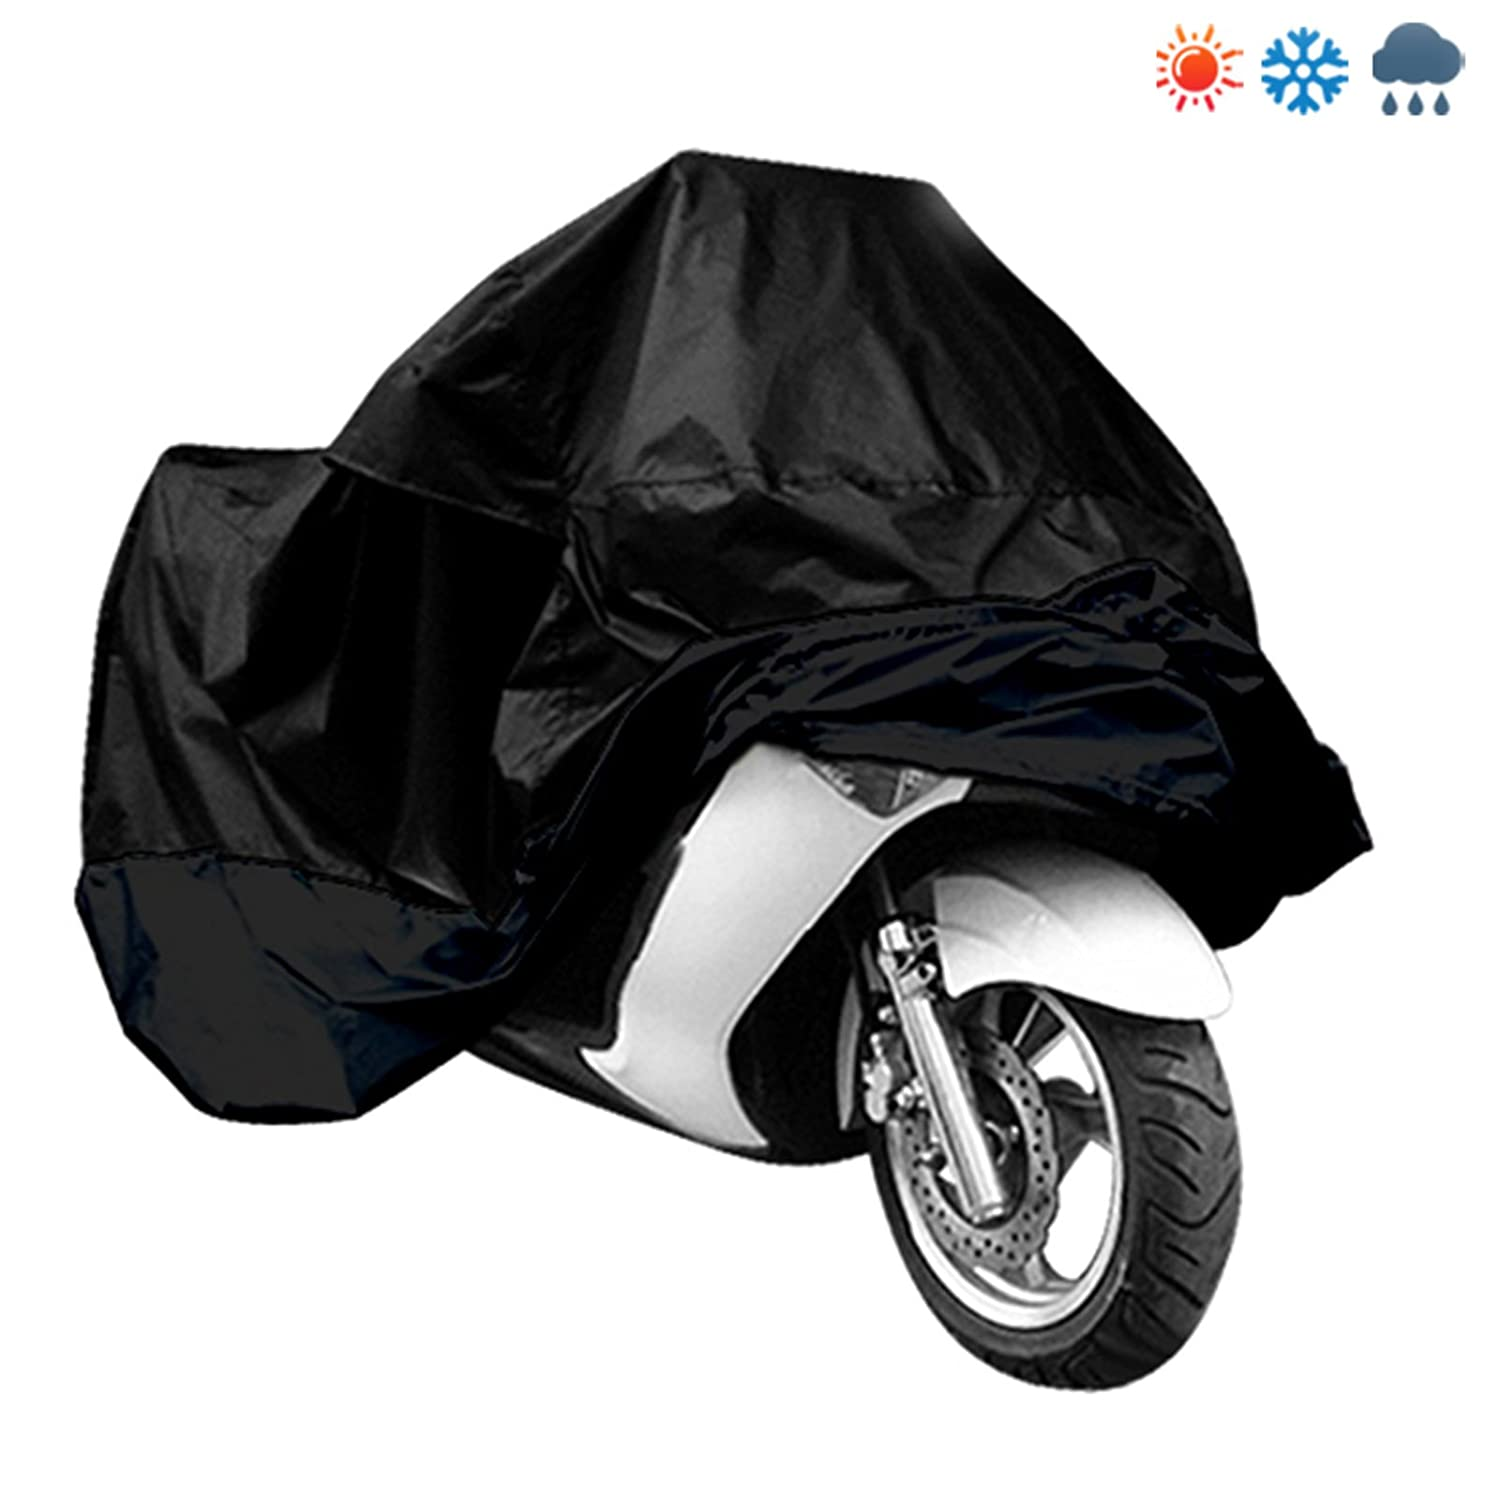 Surepromise Black Motorcycle Motorbike Waterproof Water Resistant Rain UV Protective Breathable Cover Outdoor Indoor with storage bag Large